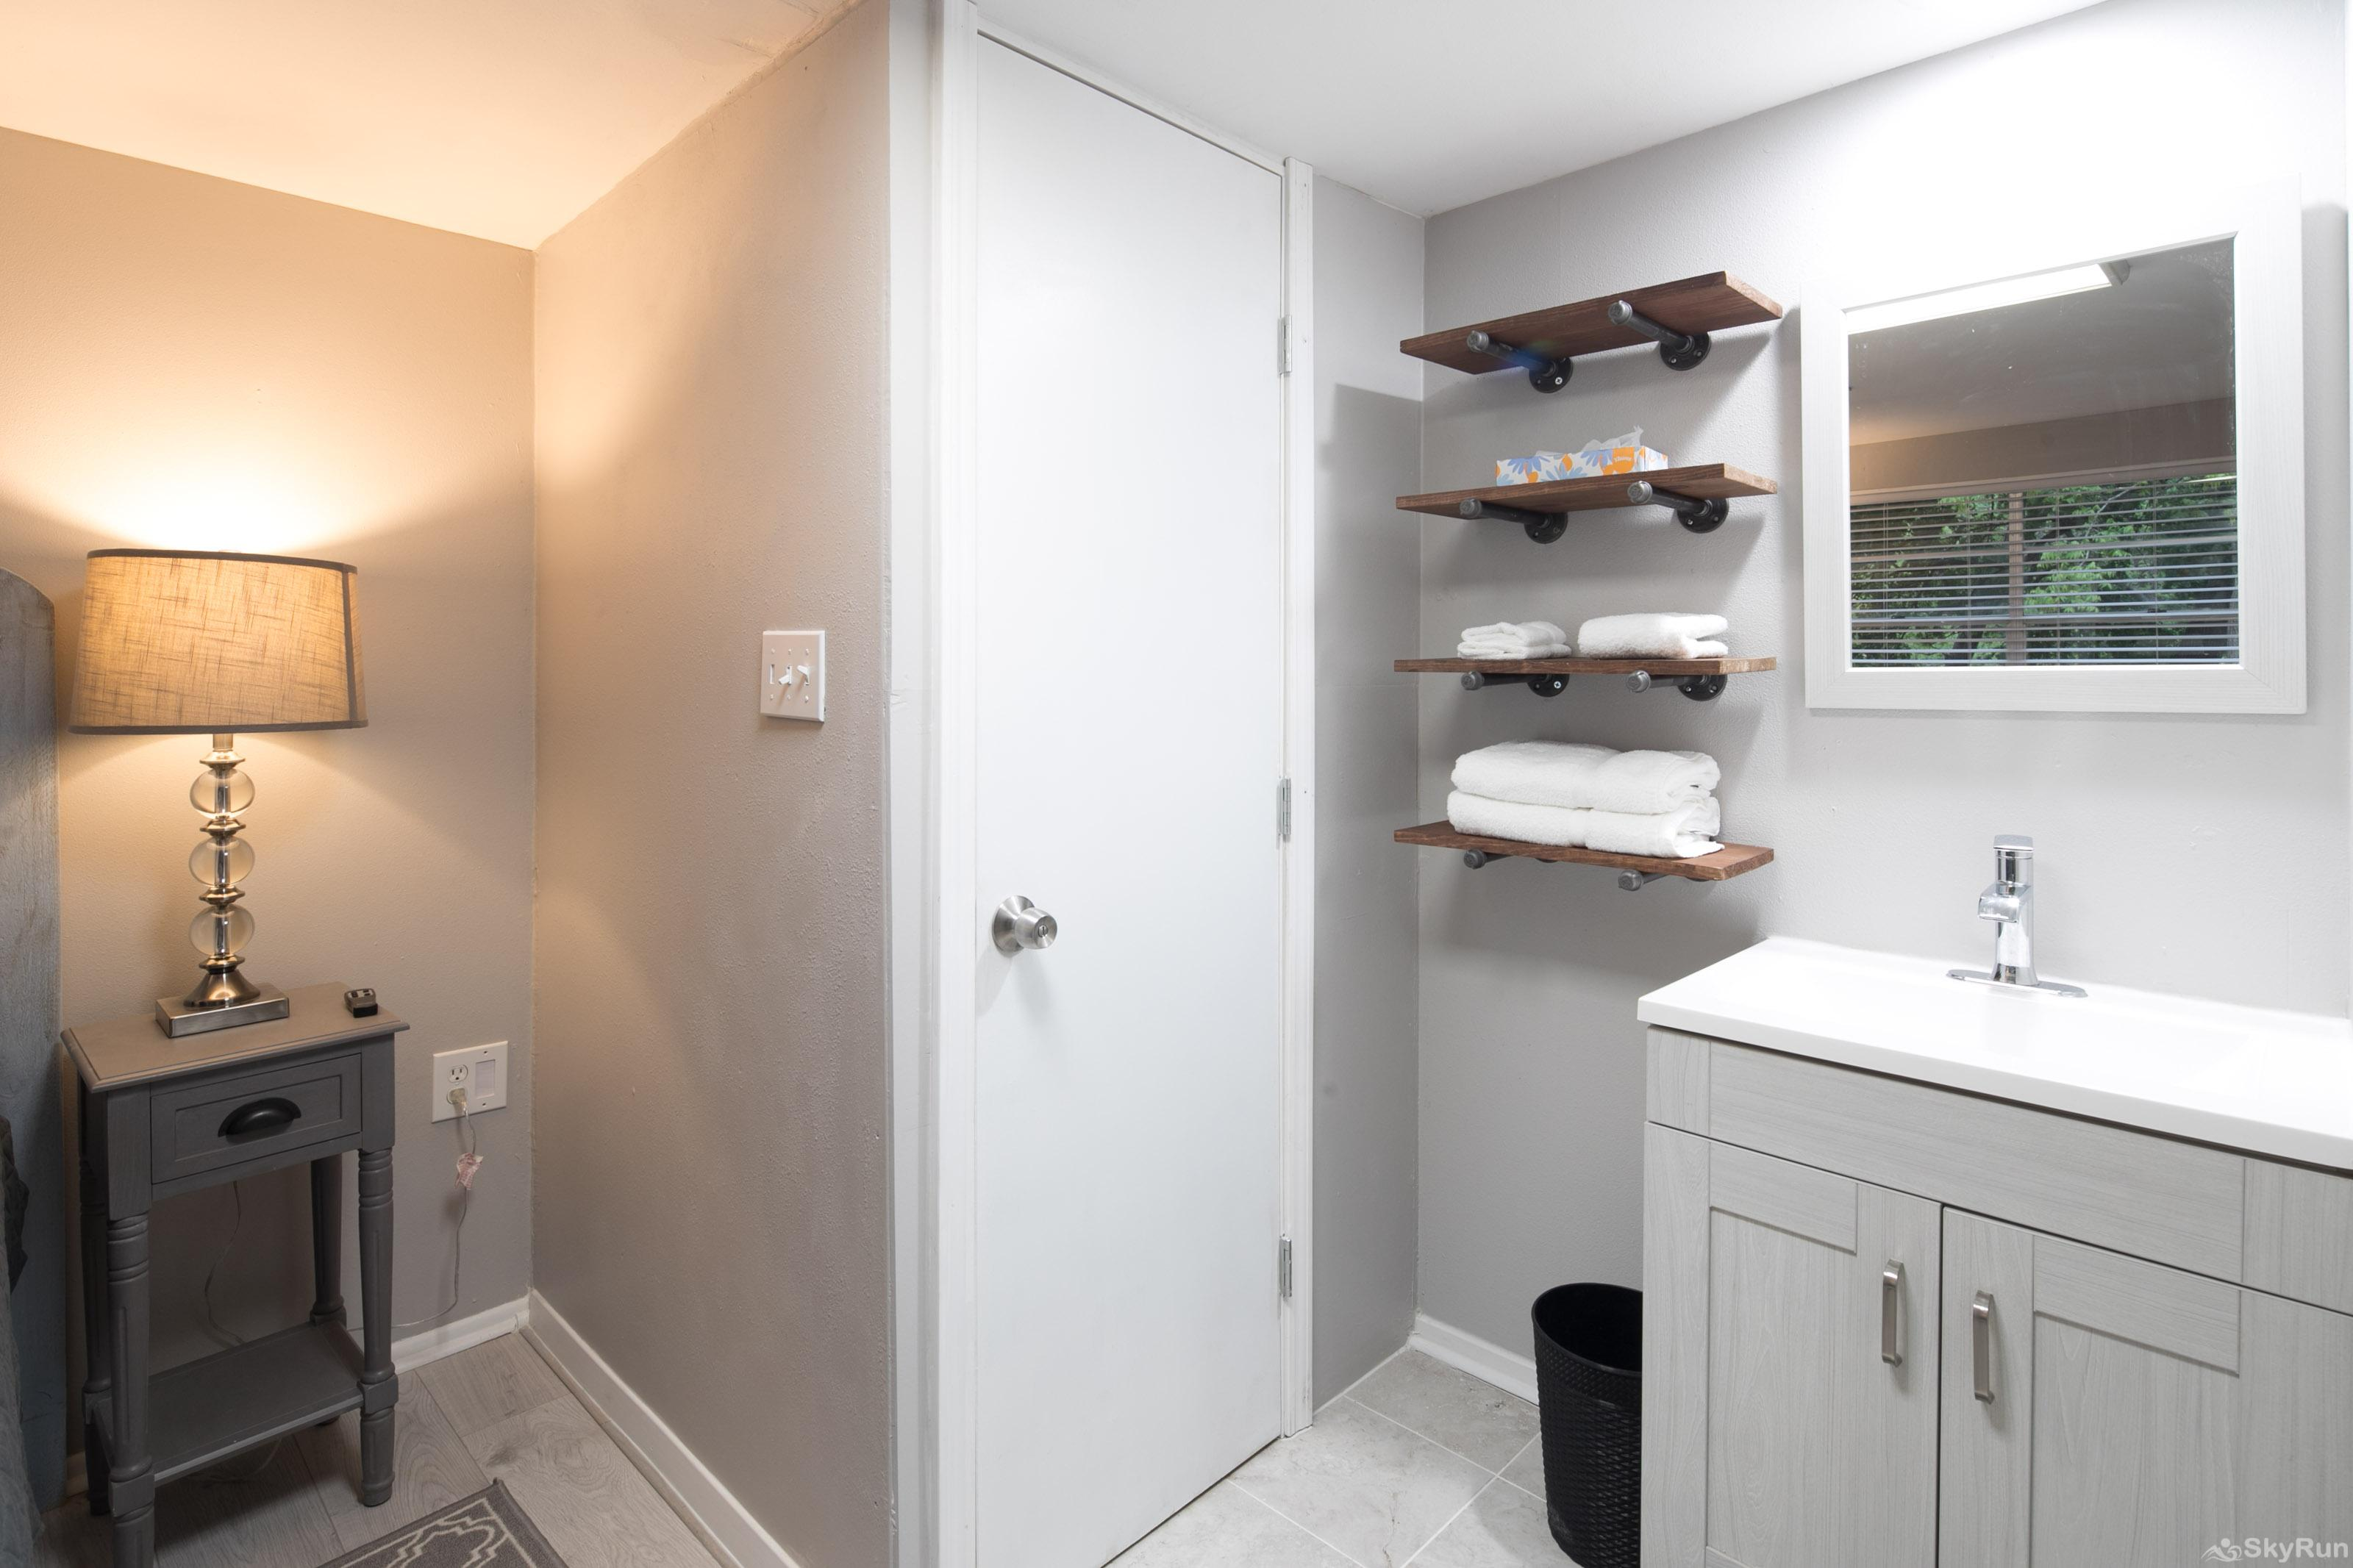 RIVER ROSE Second bathroom vanity area